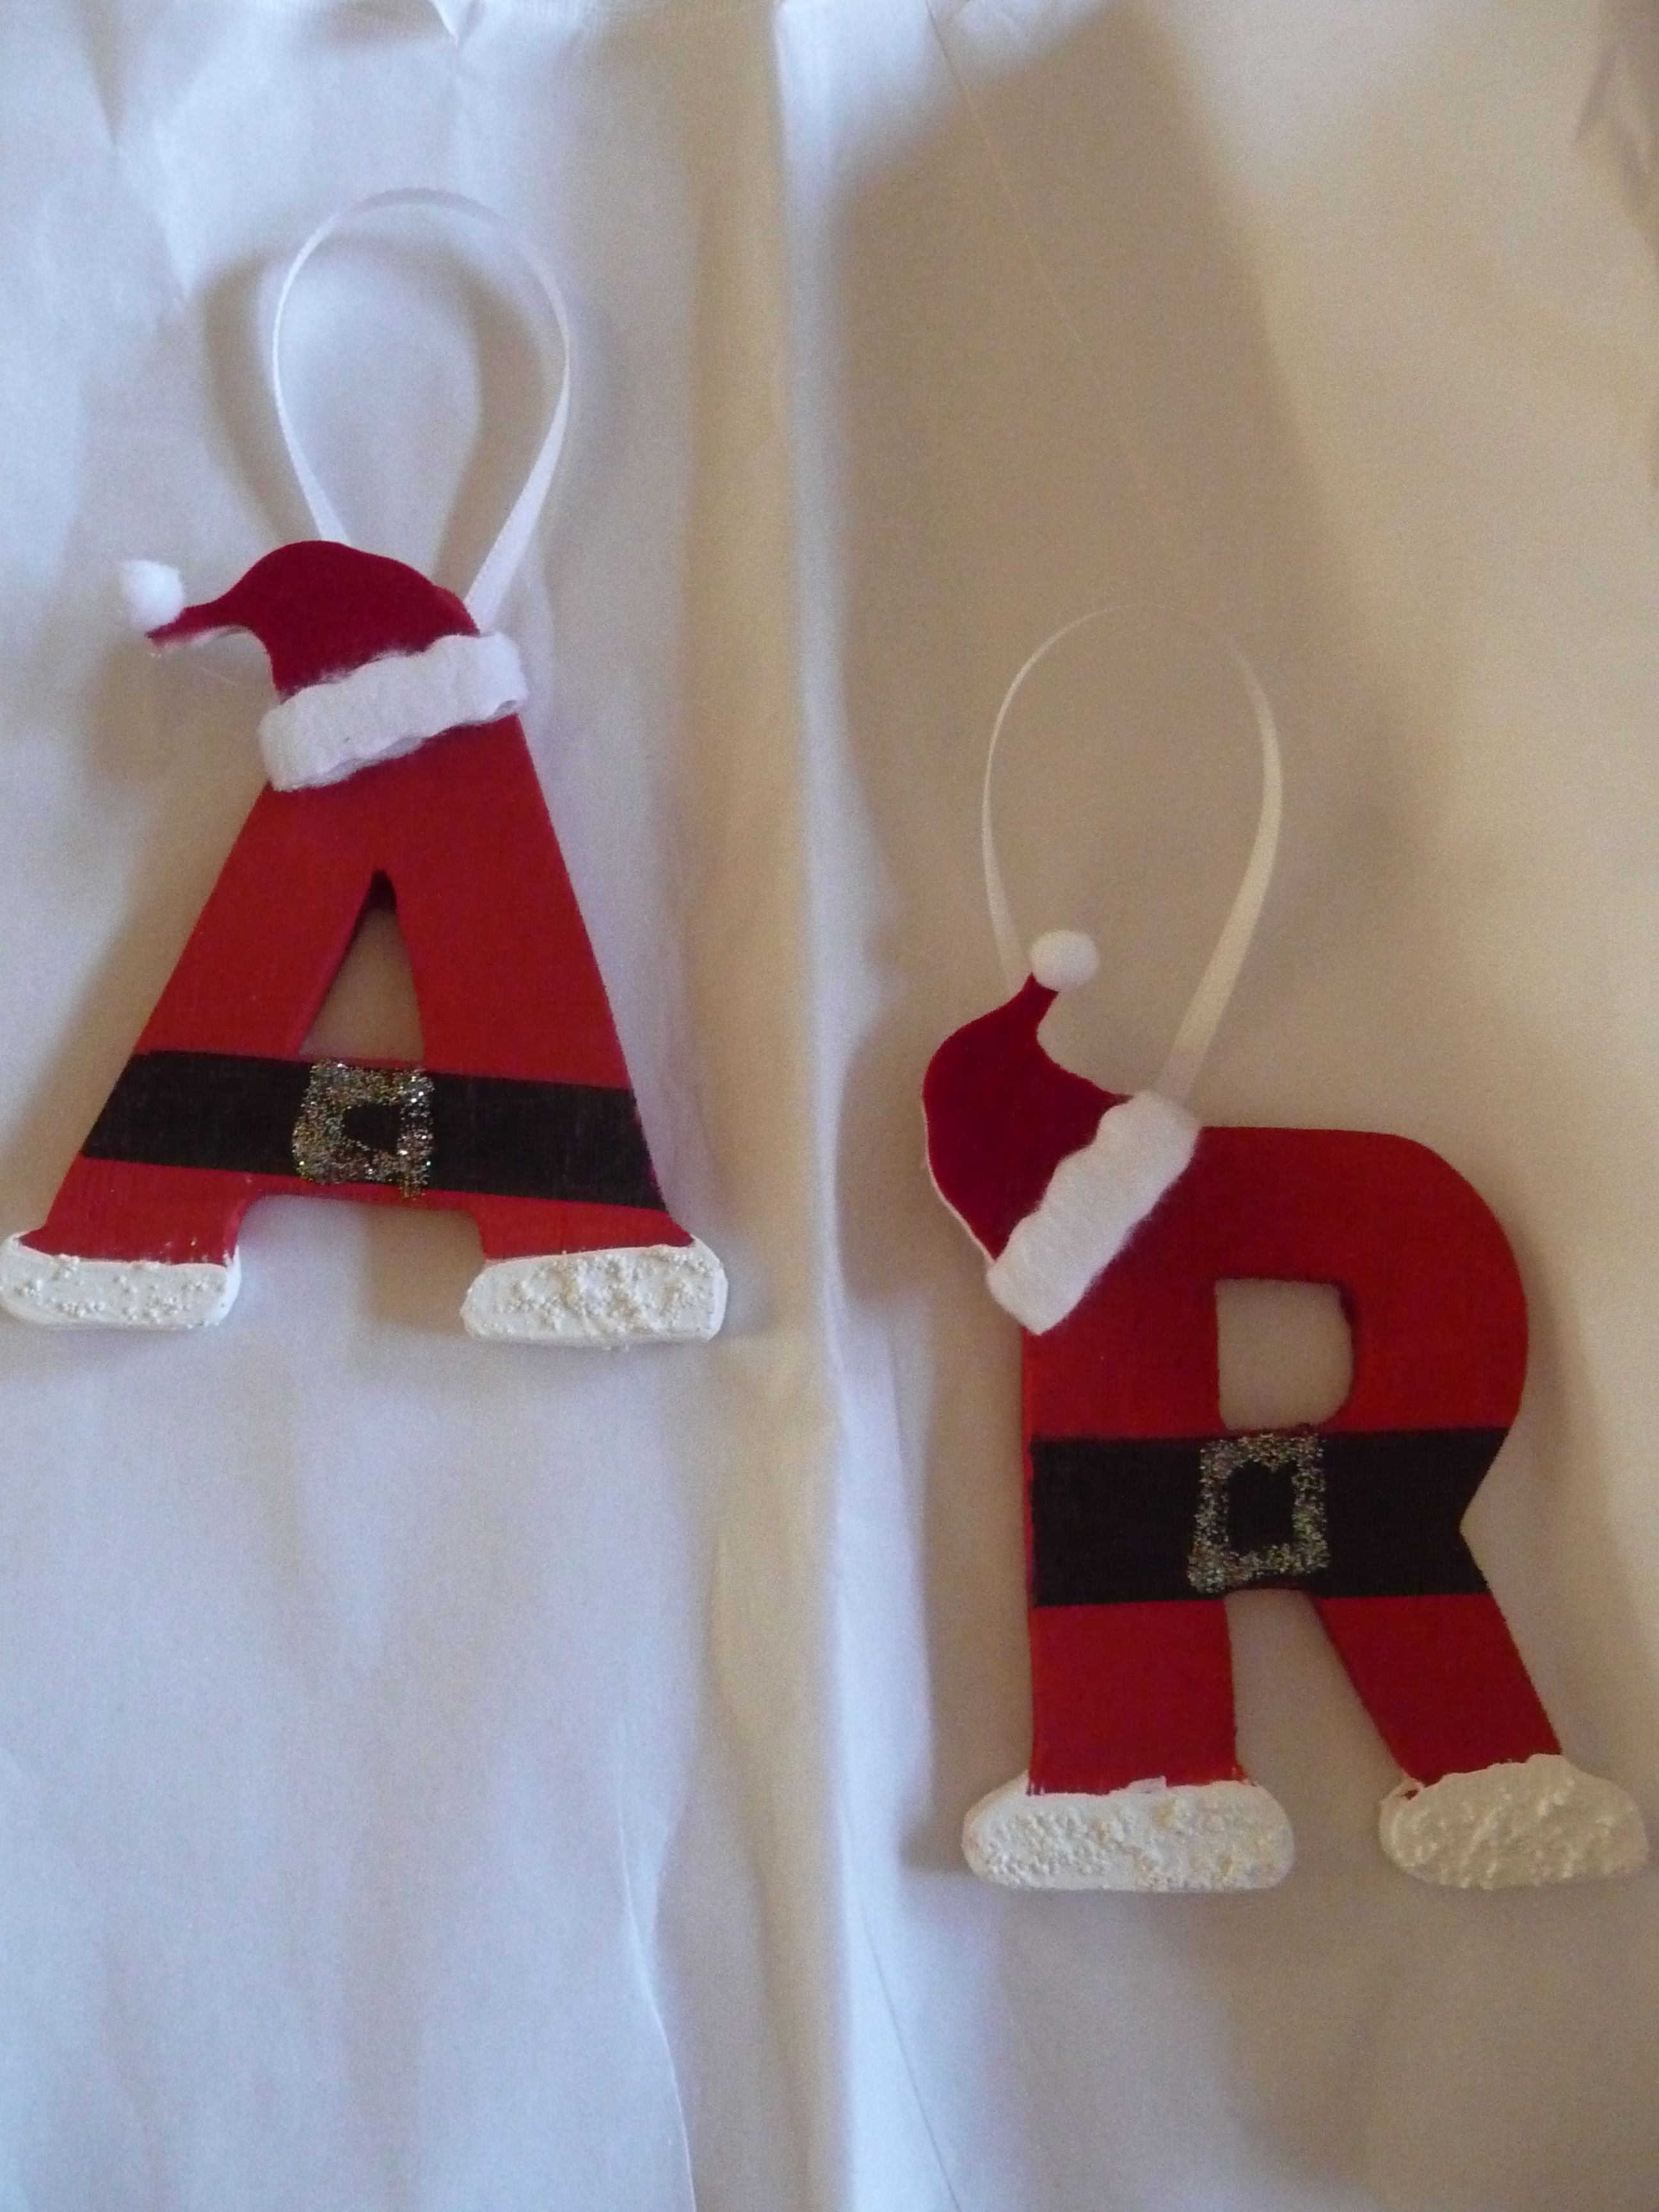 I Love This For Gift Tags & Ornaments